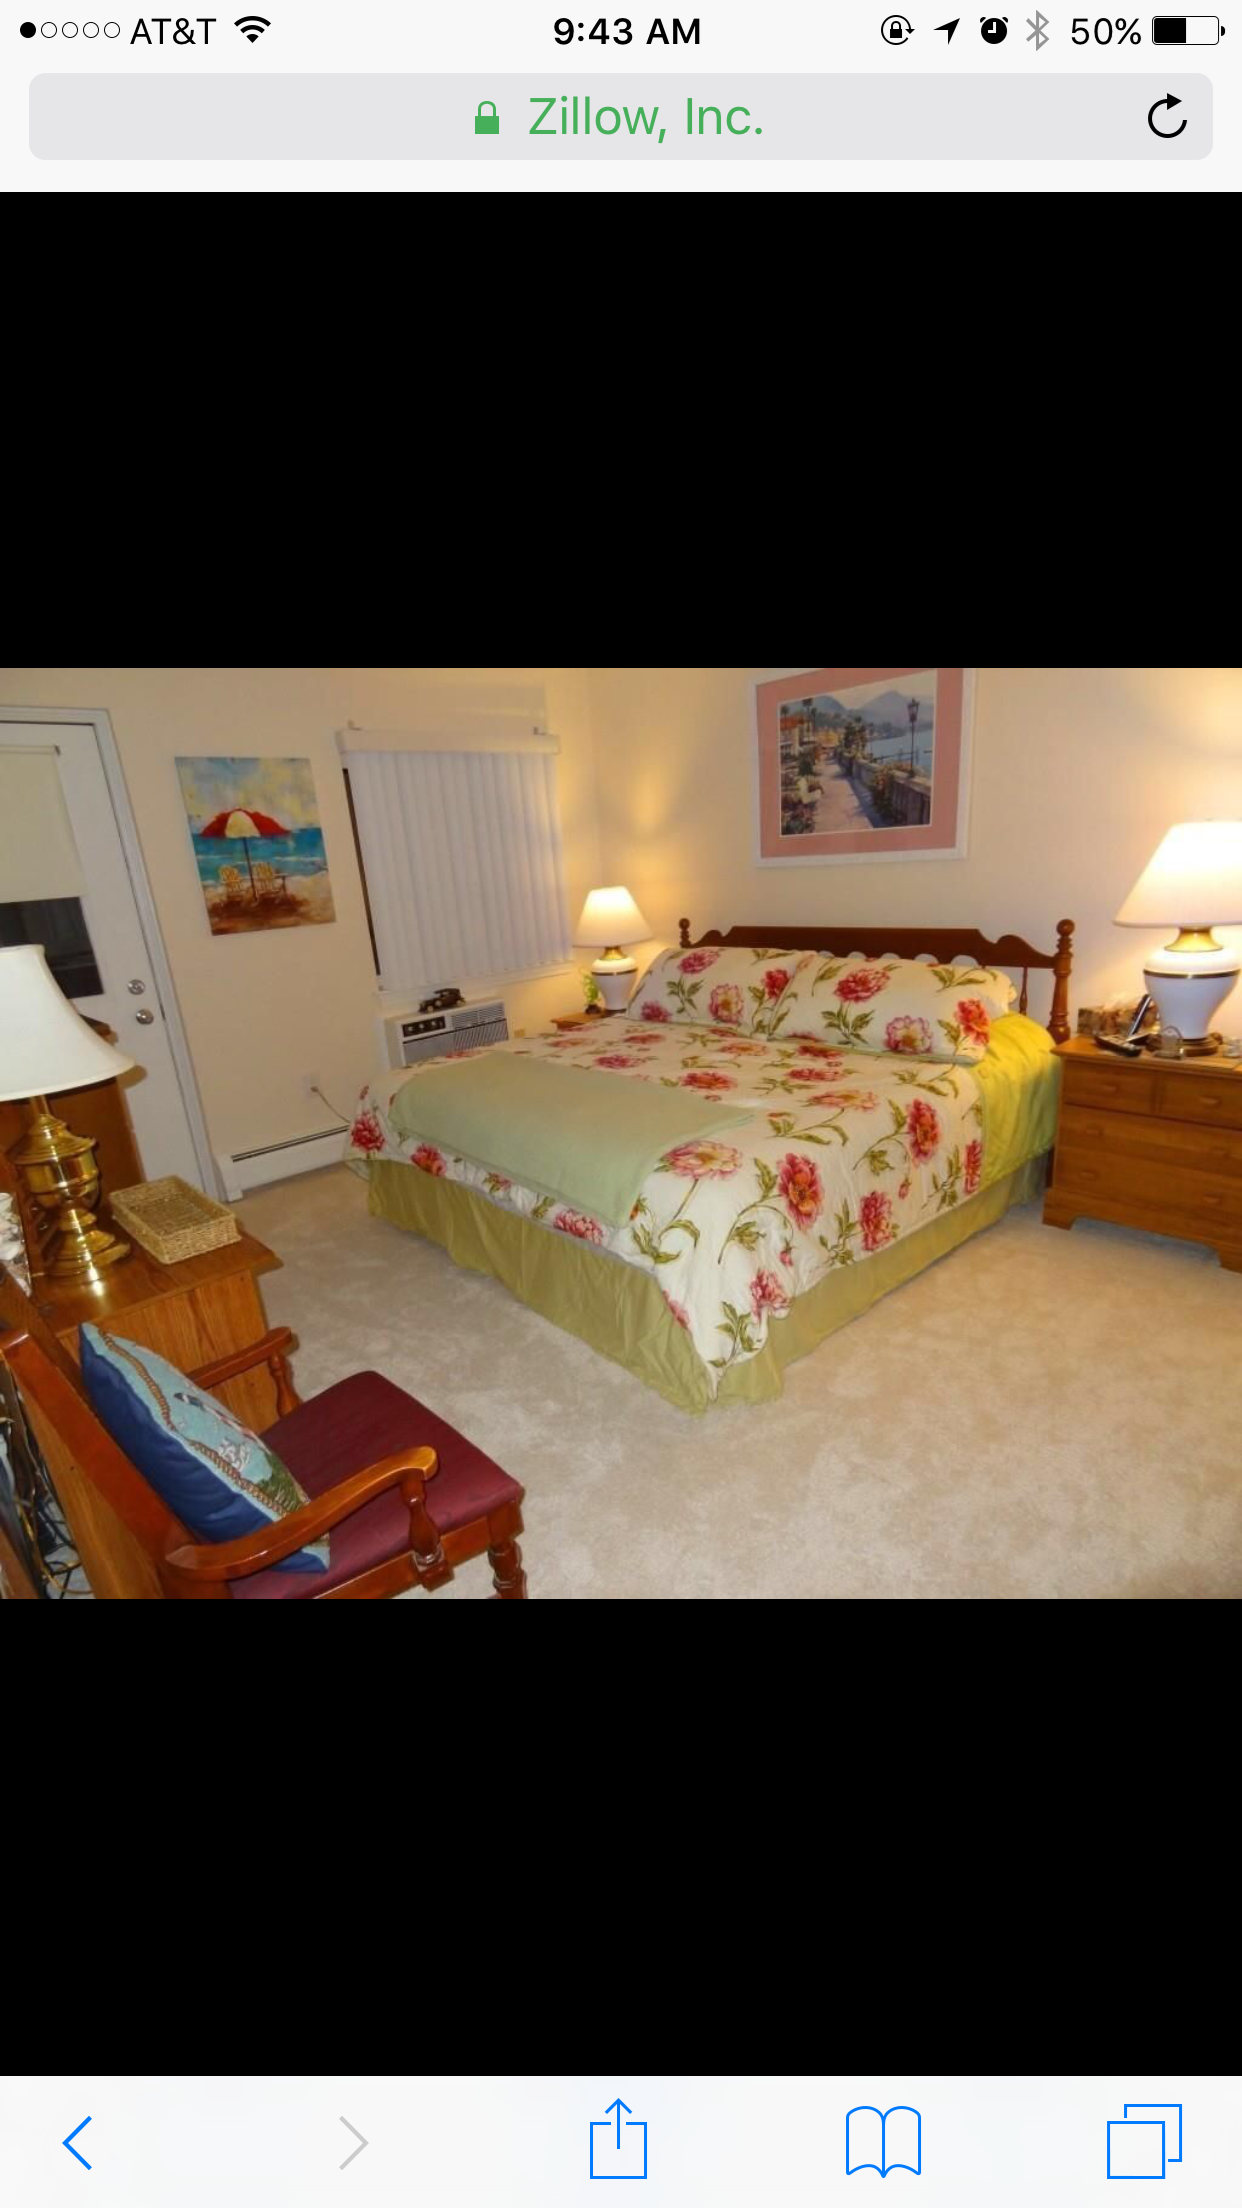 Rooms for Rent Waltham MA Apartments House mercial Space